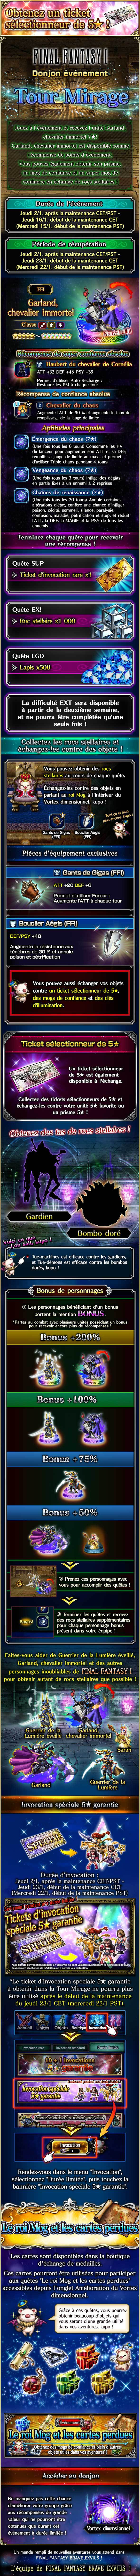 Evenement MK (FFI) - Tour Mirage - du 02/01 au 16/01/20 20191231FFIMirageTower